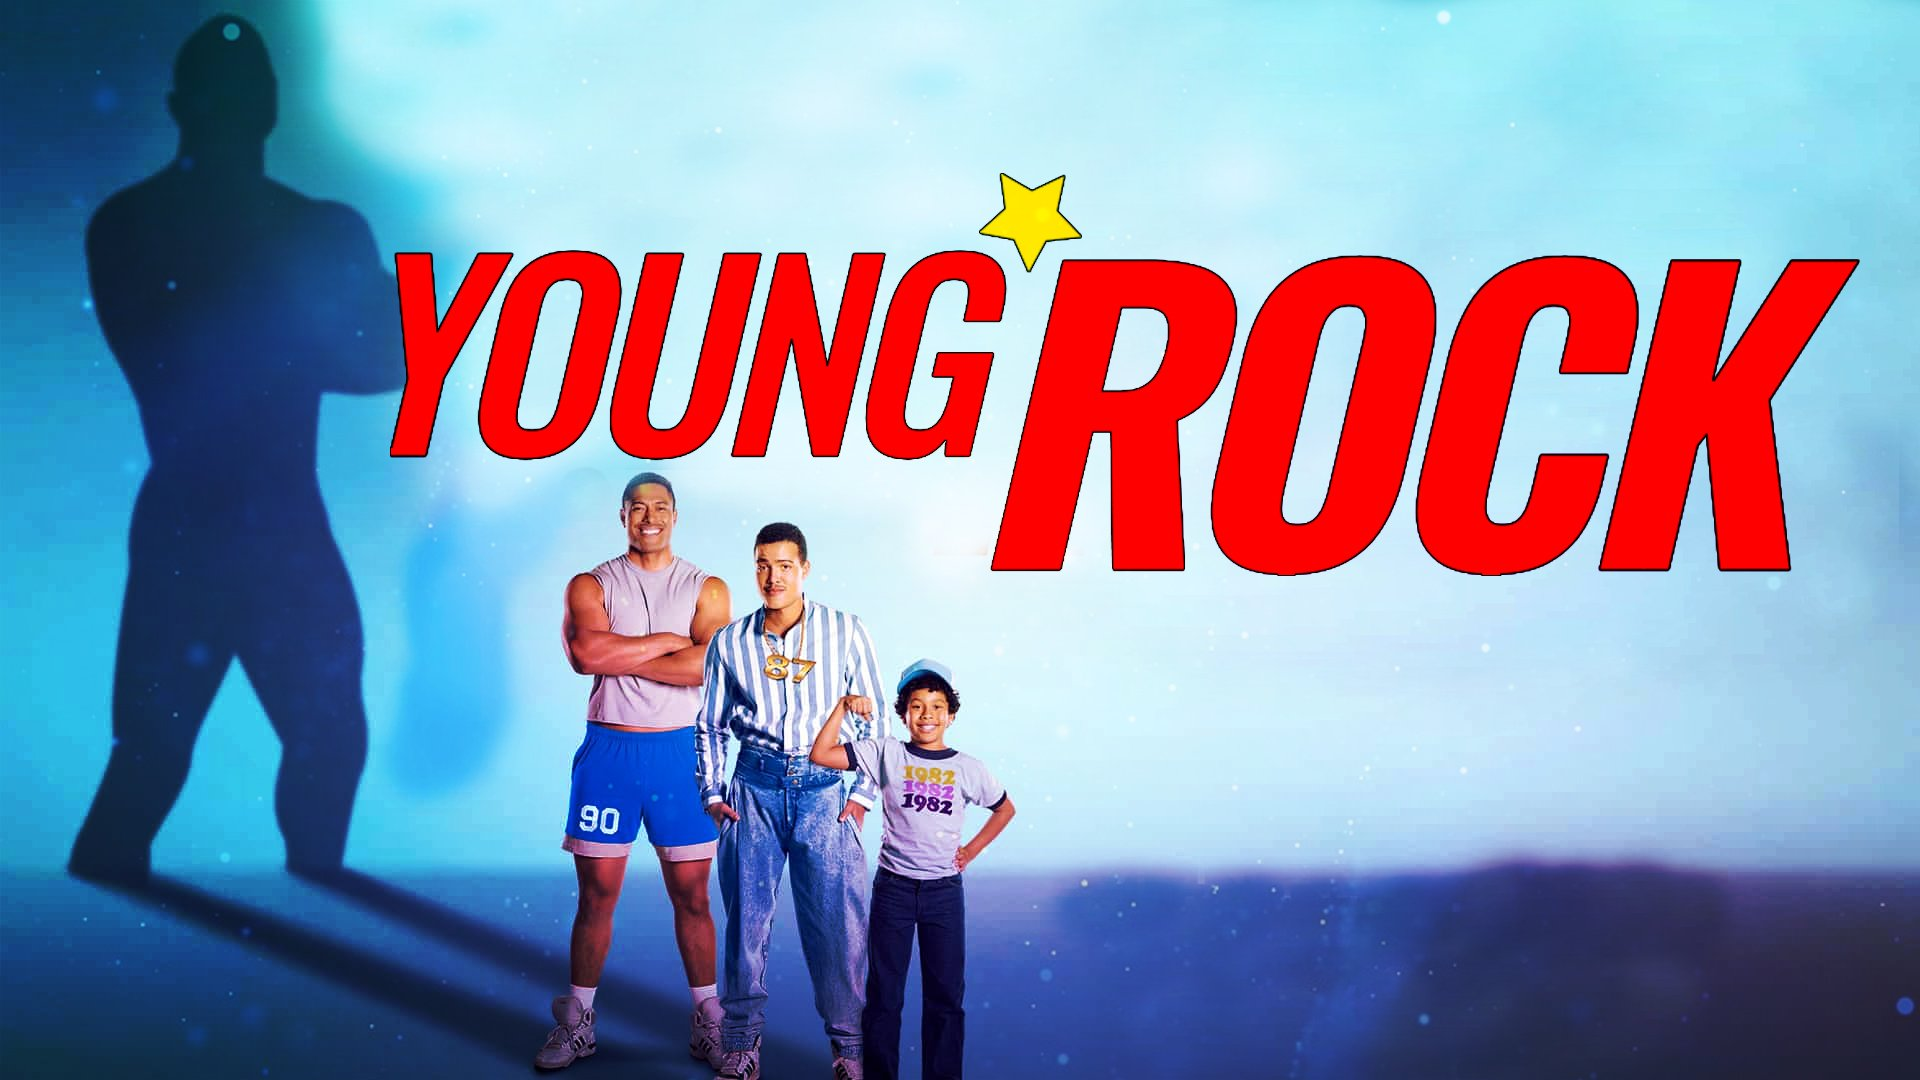 Young Rock Season 1 Episode 4 to be released soon